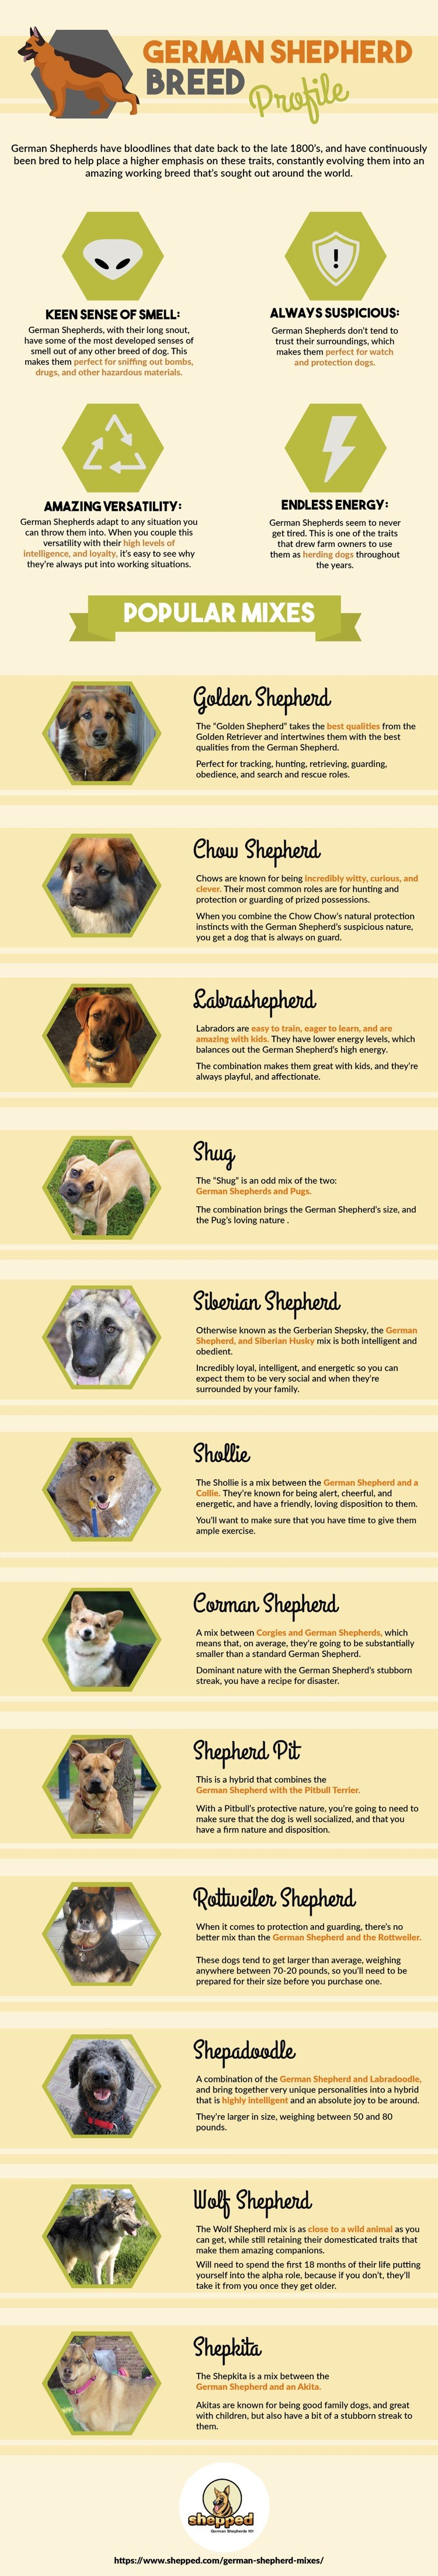 German Shepherd Mixes by Shepped.com